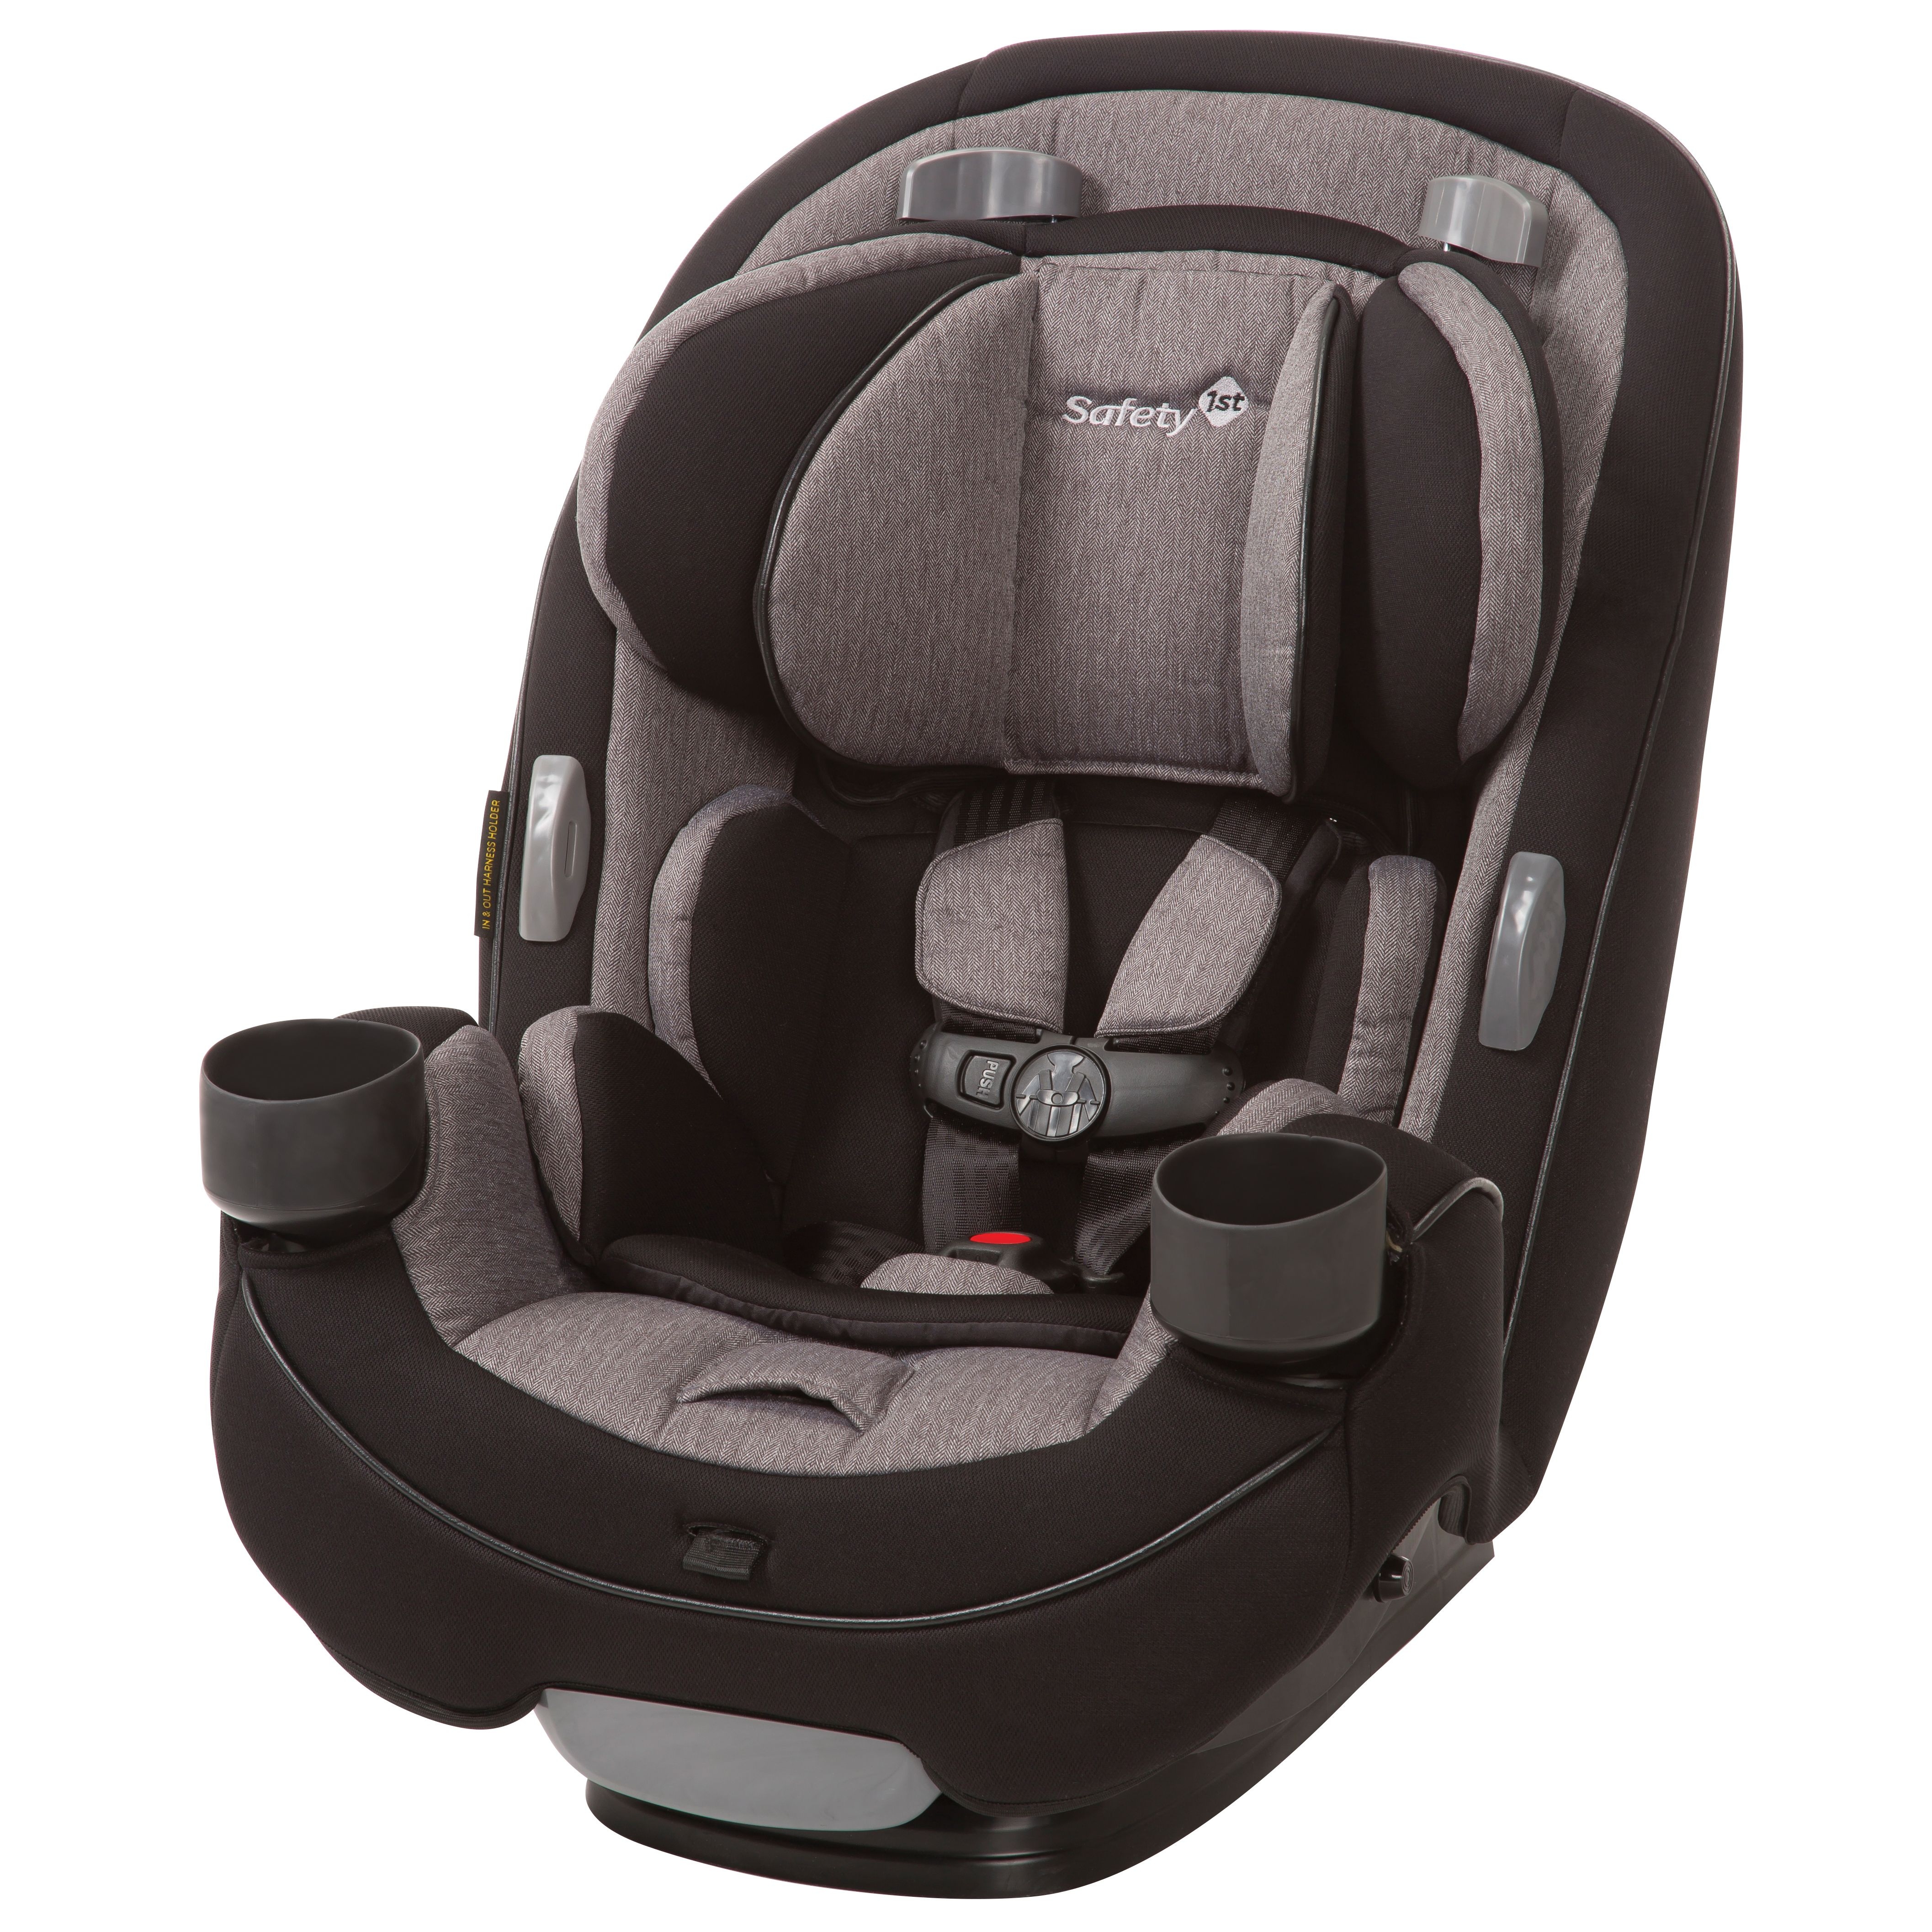 The Safety 1stR Grow And GoTM 3 In 1 Convertible Car Seat Is Built To With Your Child It Features An Adaptable Design That Transforms From